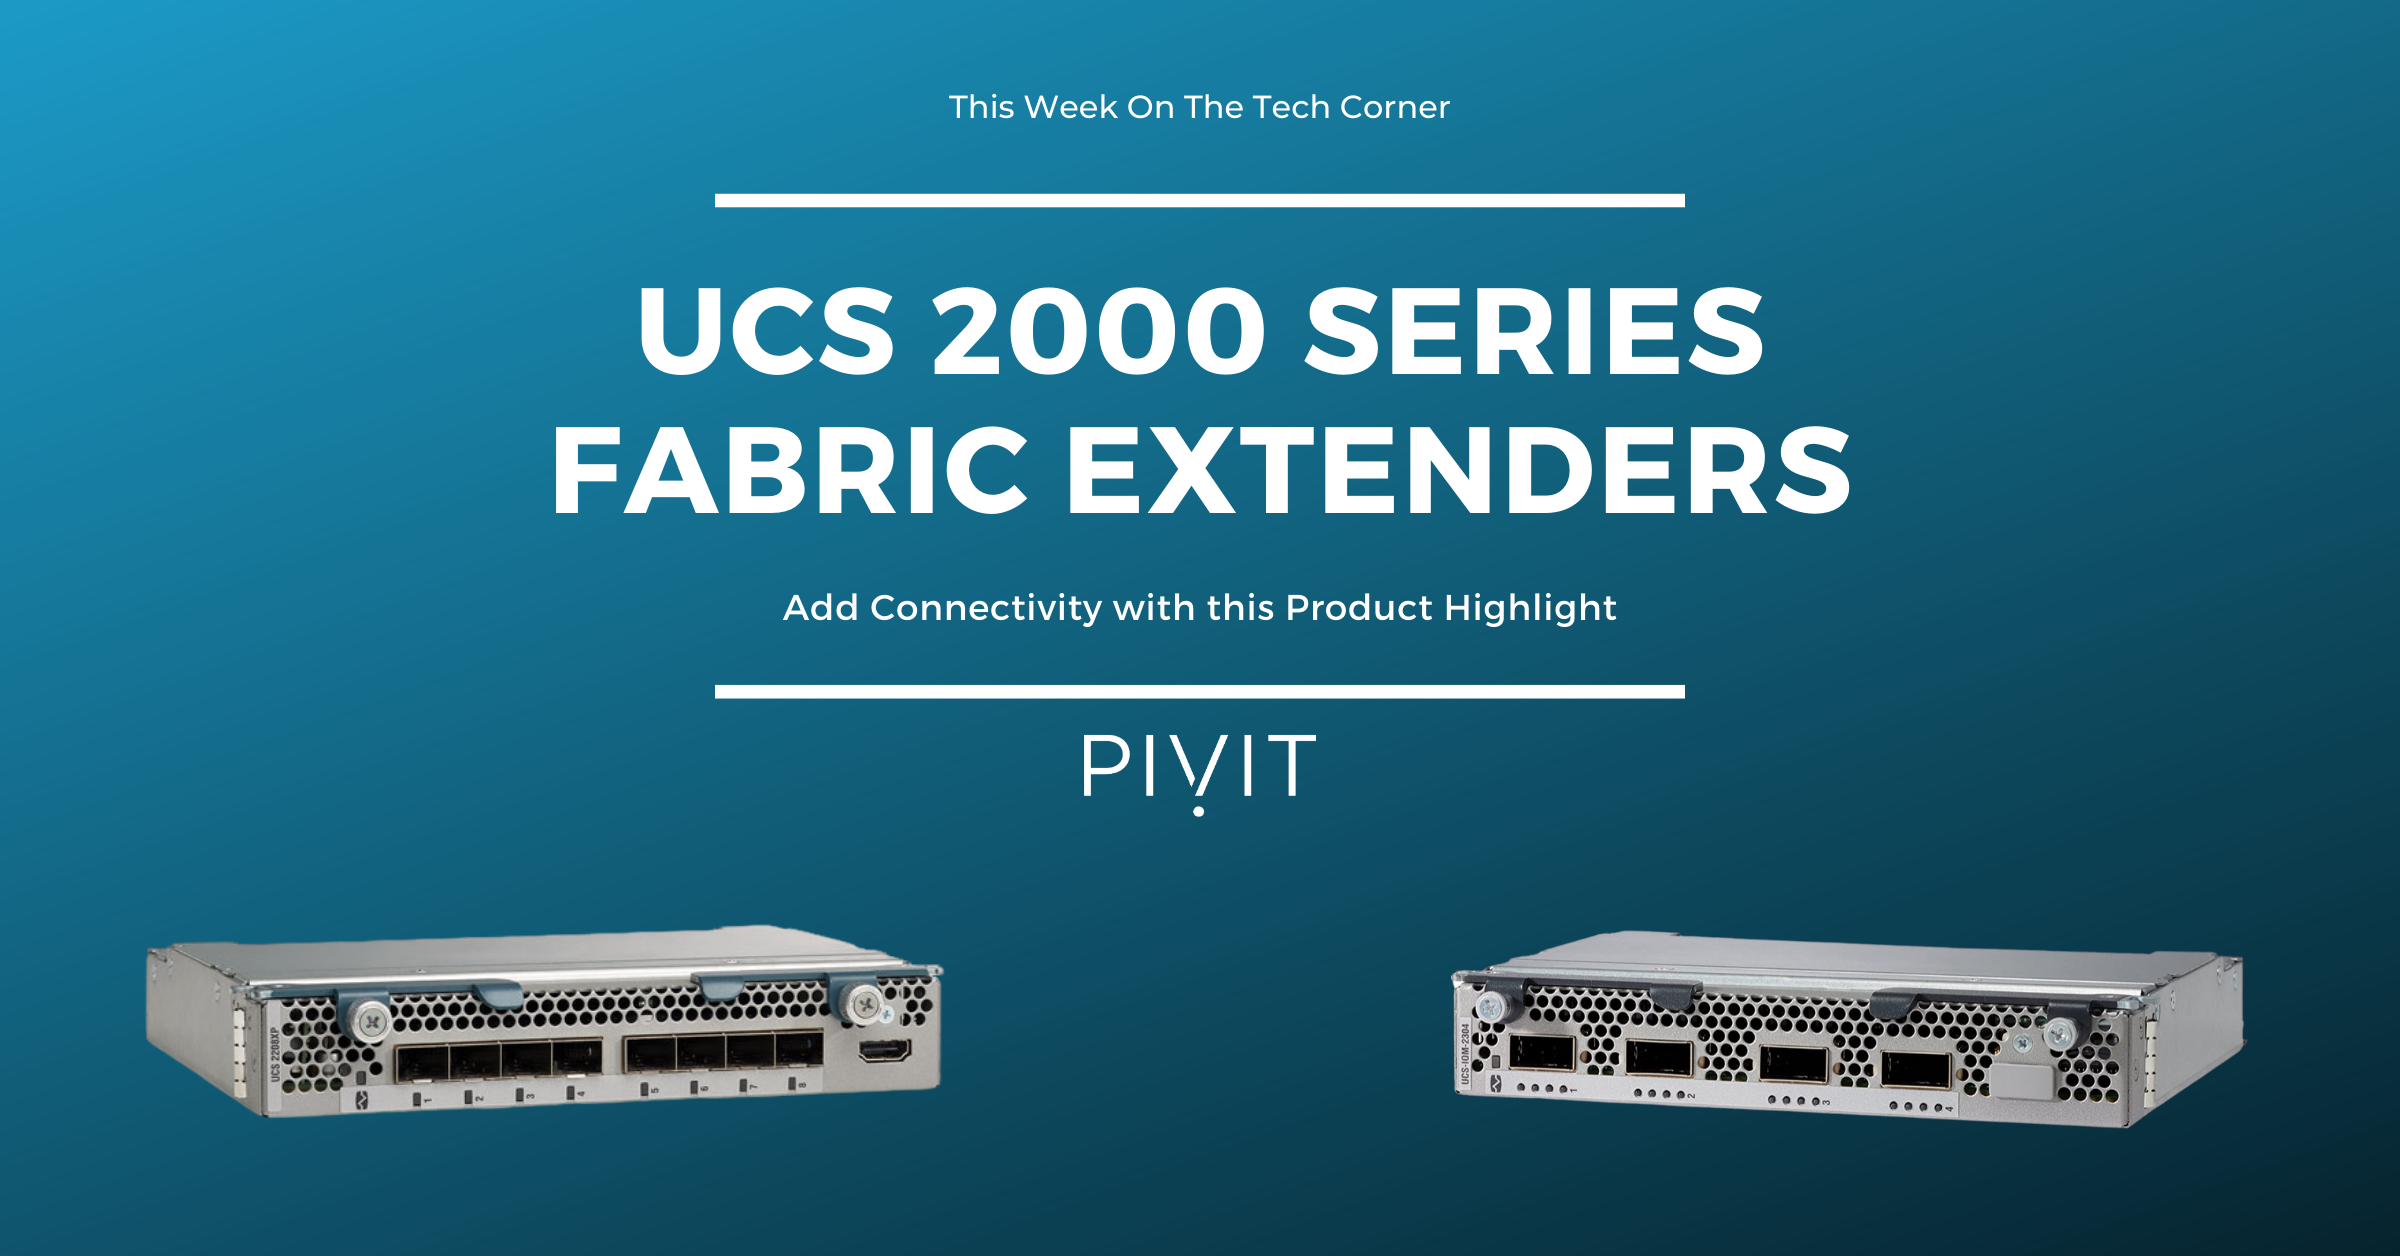 Look at Adding Connectivity with UCS 2000 Series Fabric Extenders